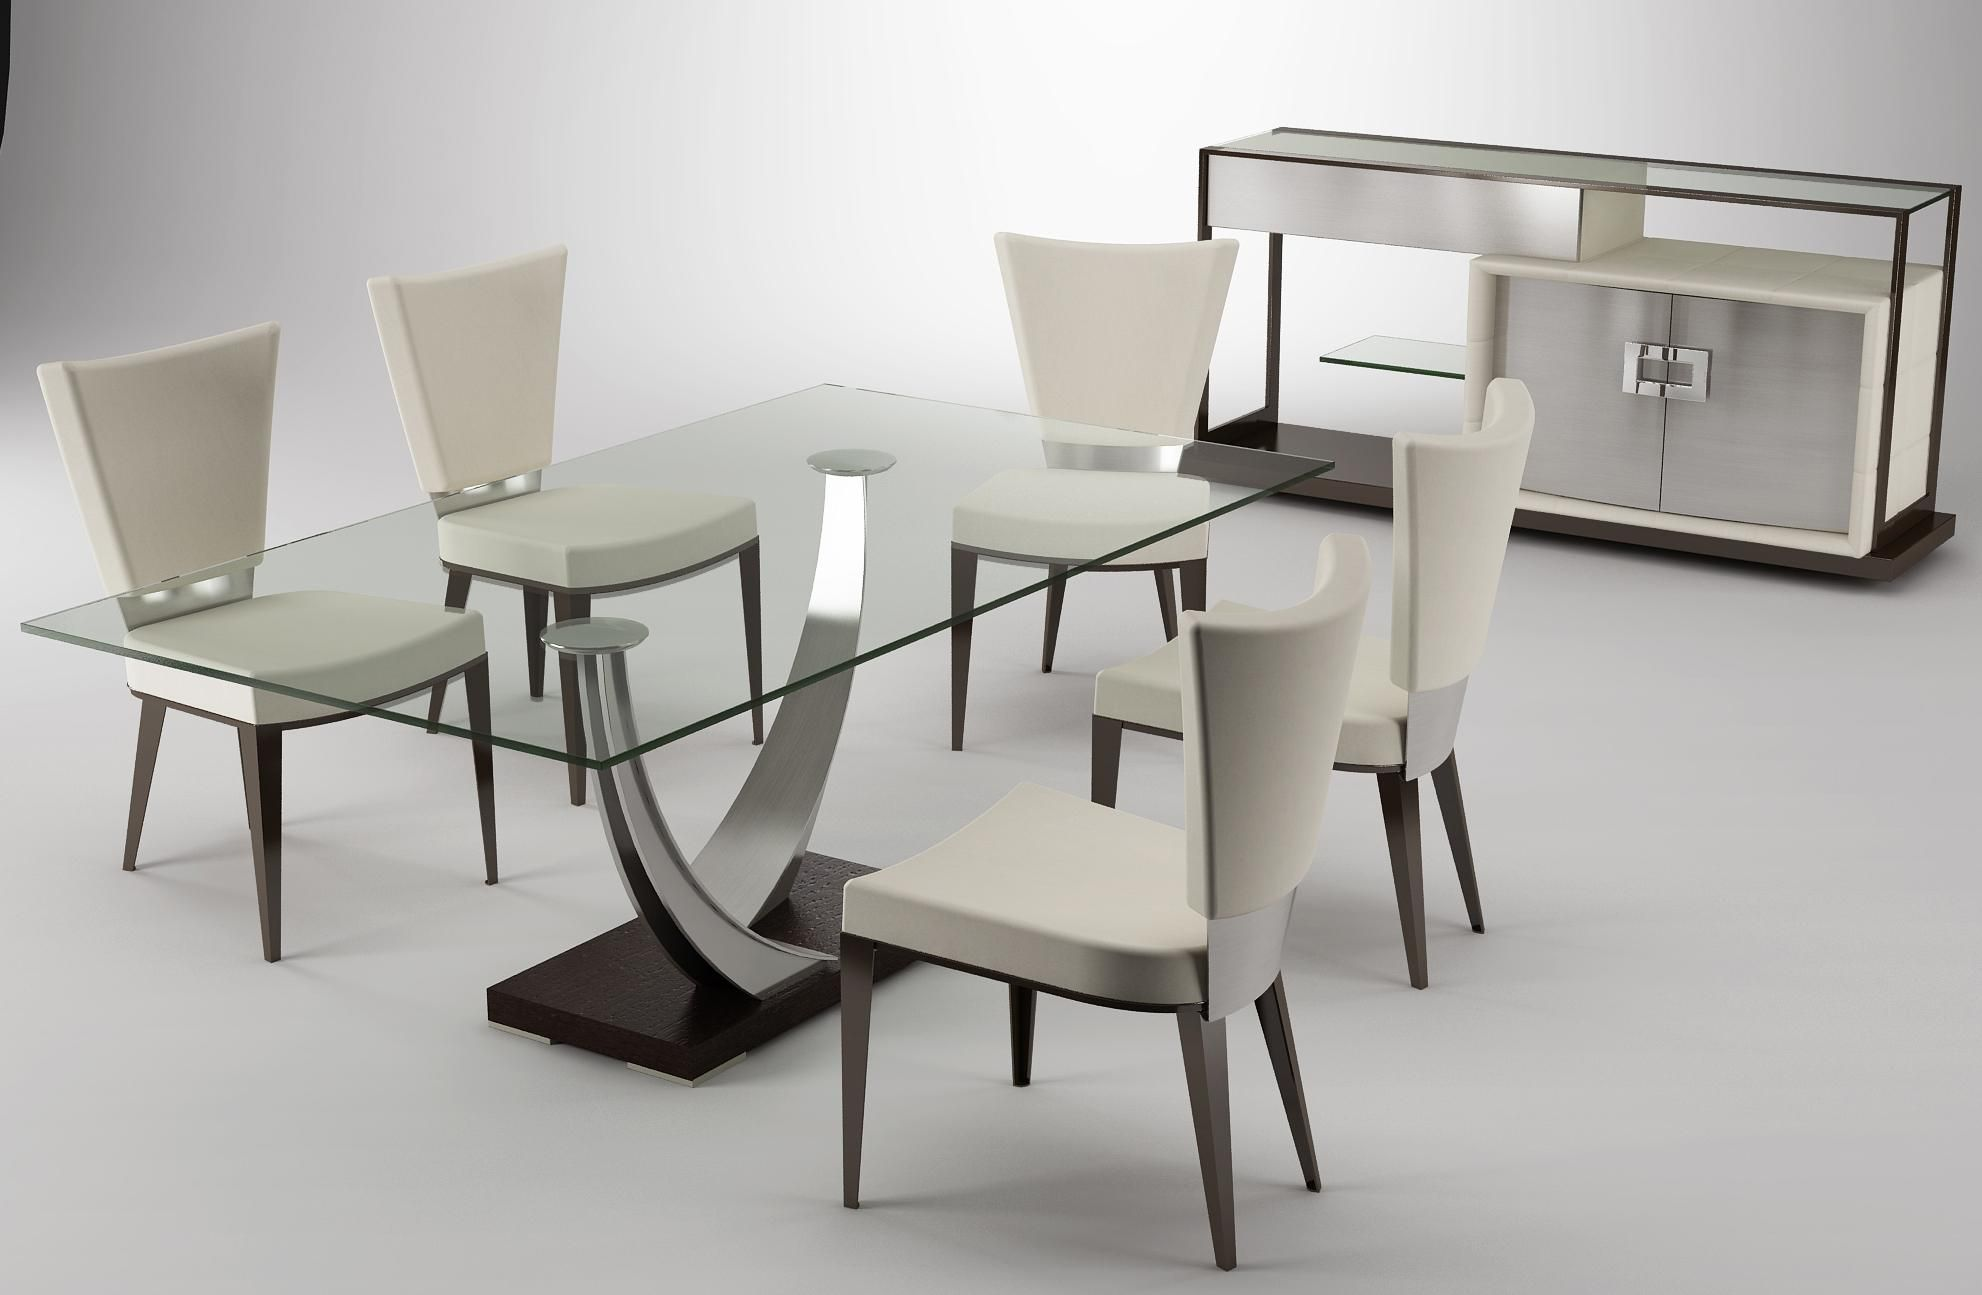 Amazing modern stylish dining room table set designs elite tangent glass top furniture stores - Dining room modern ...